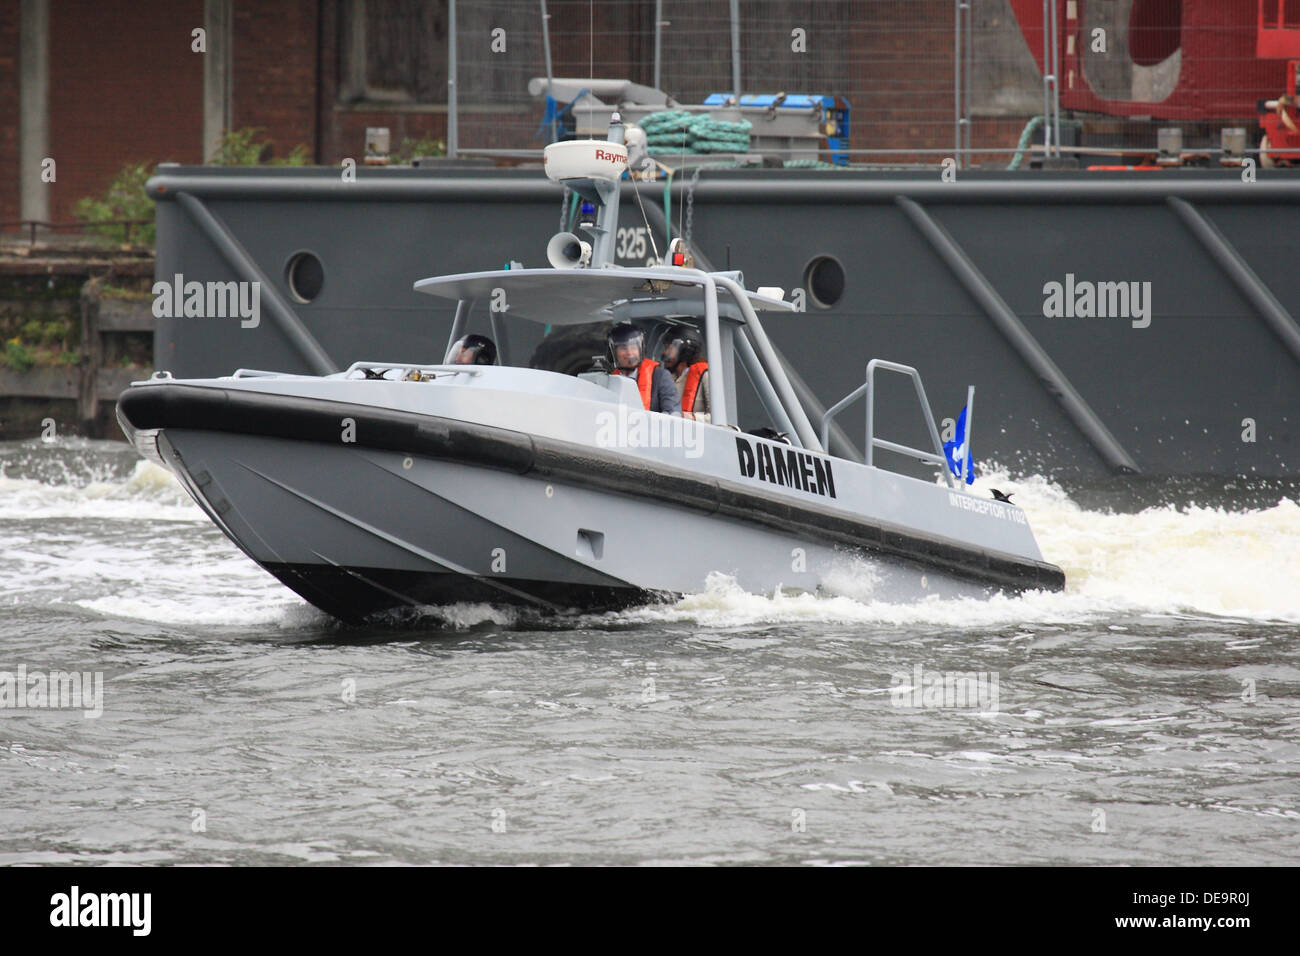 Damen Interceptor 1102 Developed for police, coastguard and navy displays at DSEi 2013 in London's Docklands - Stock Image